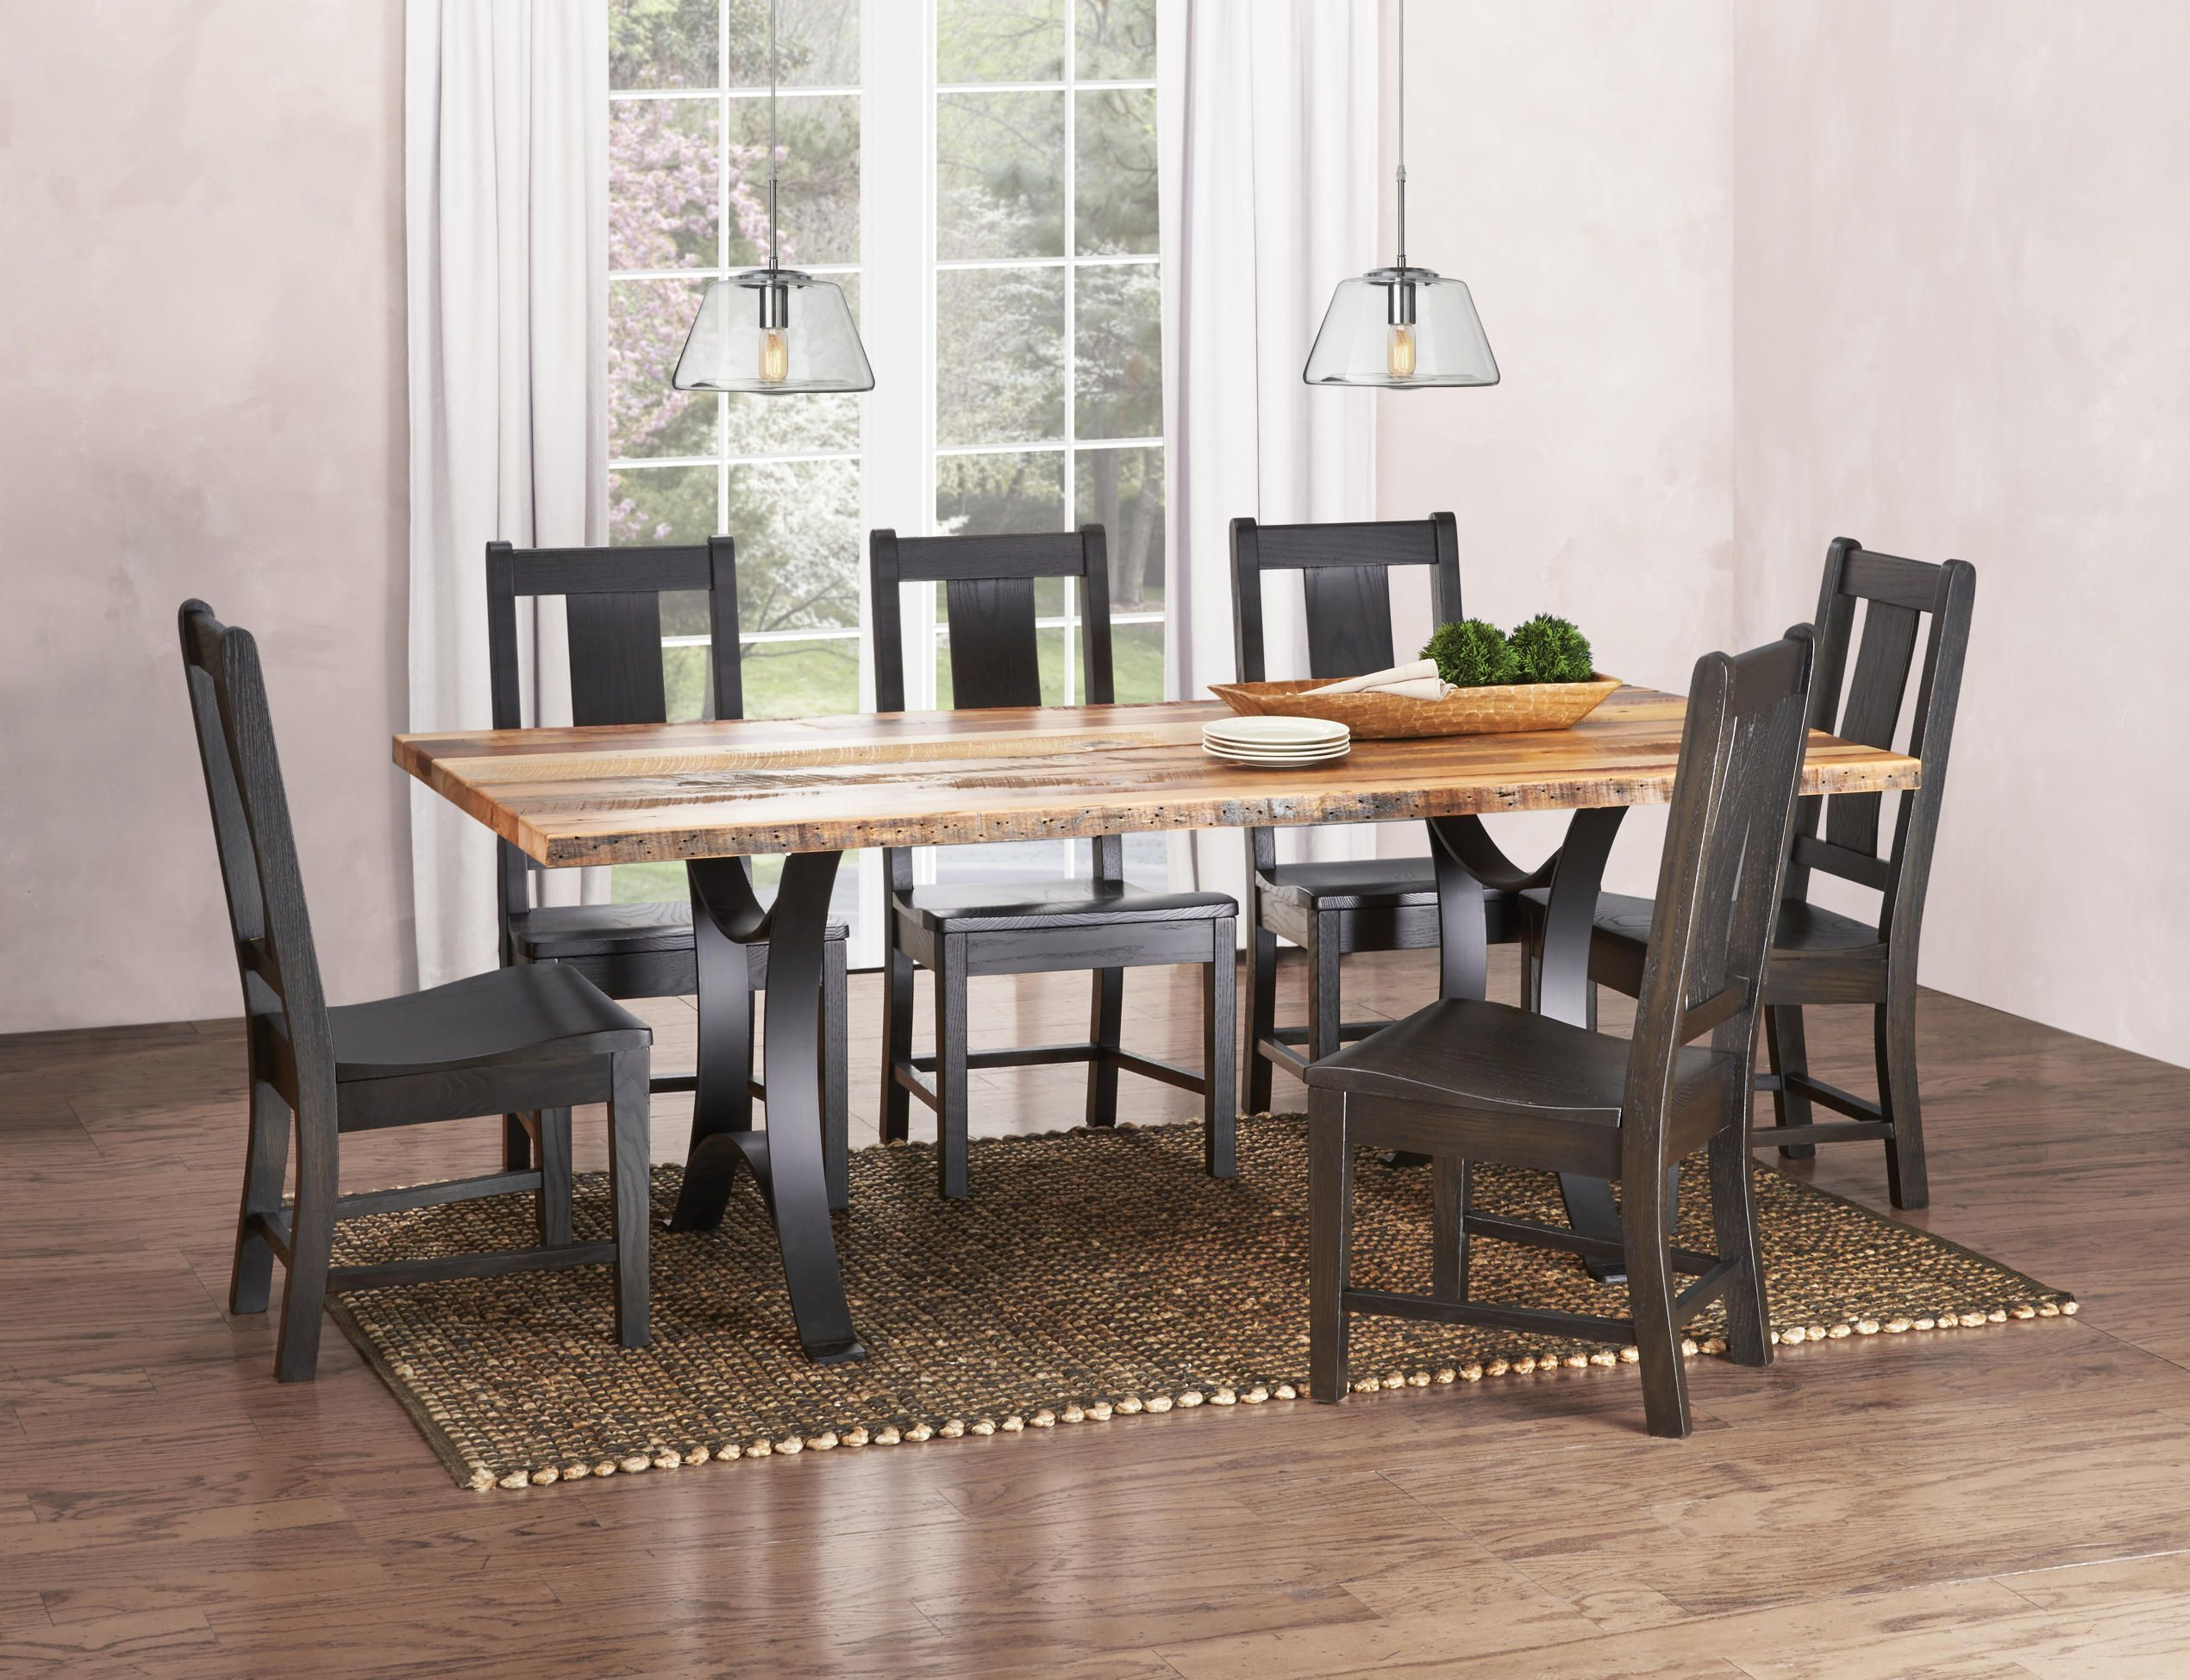 Authentics Dining Collection Dinettes Dining Rooms Art Van Furniture The Midwest S 1 Furniture Mattres Furniture Dining Room Art Dining Room Remodel